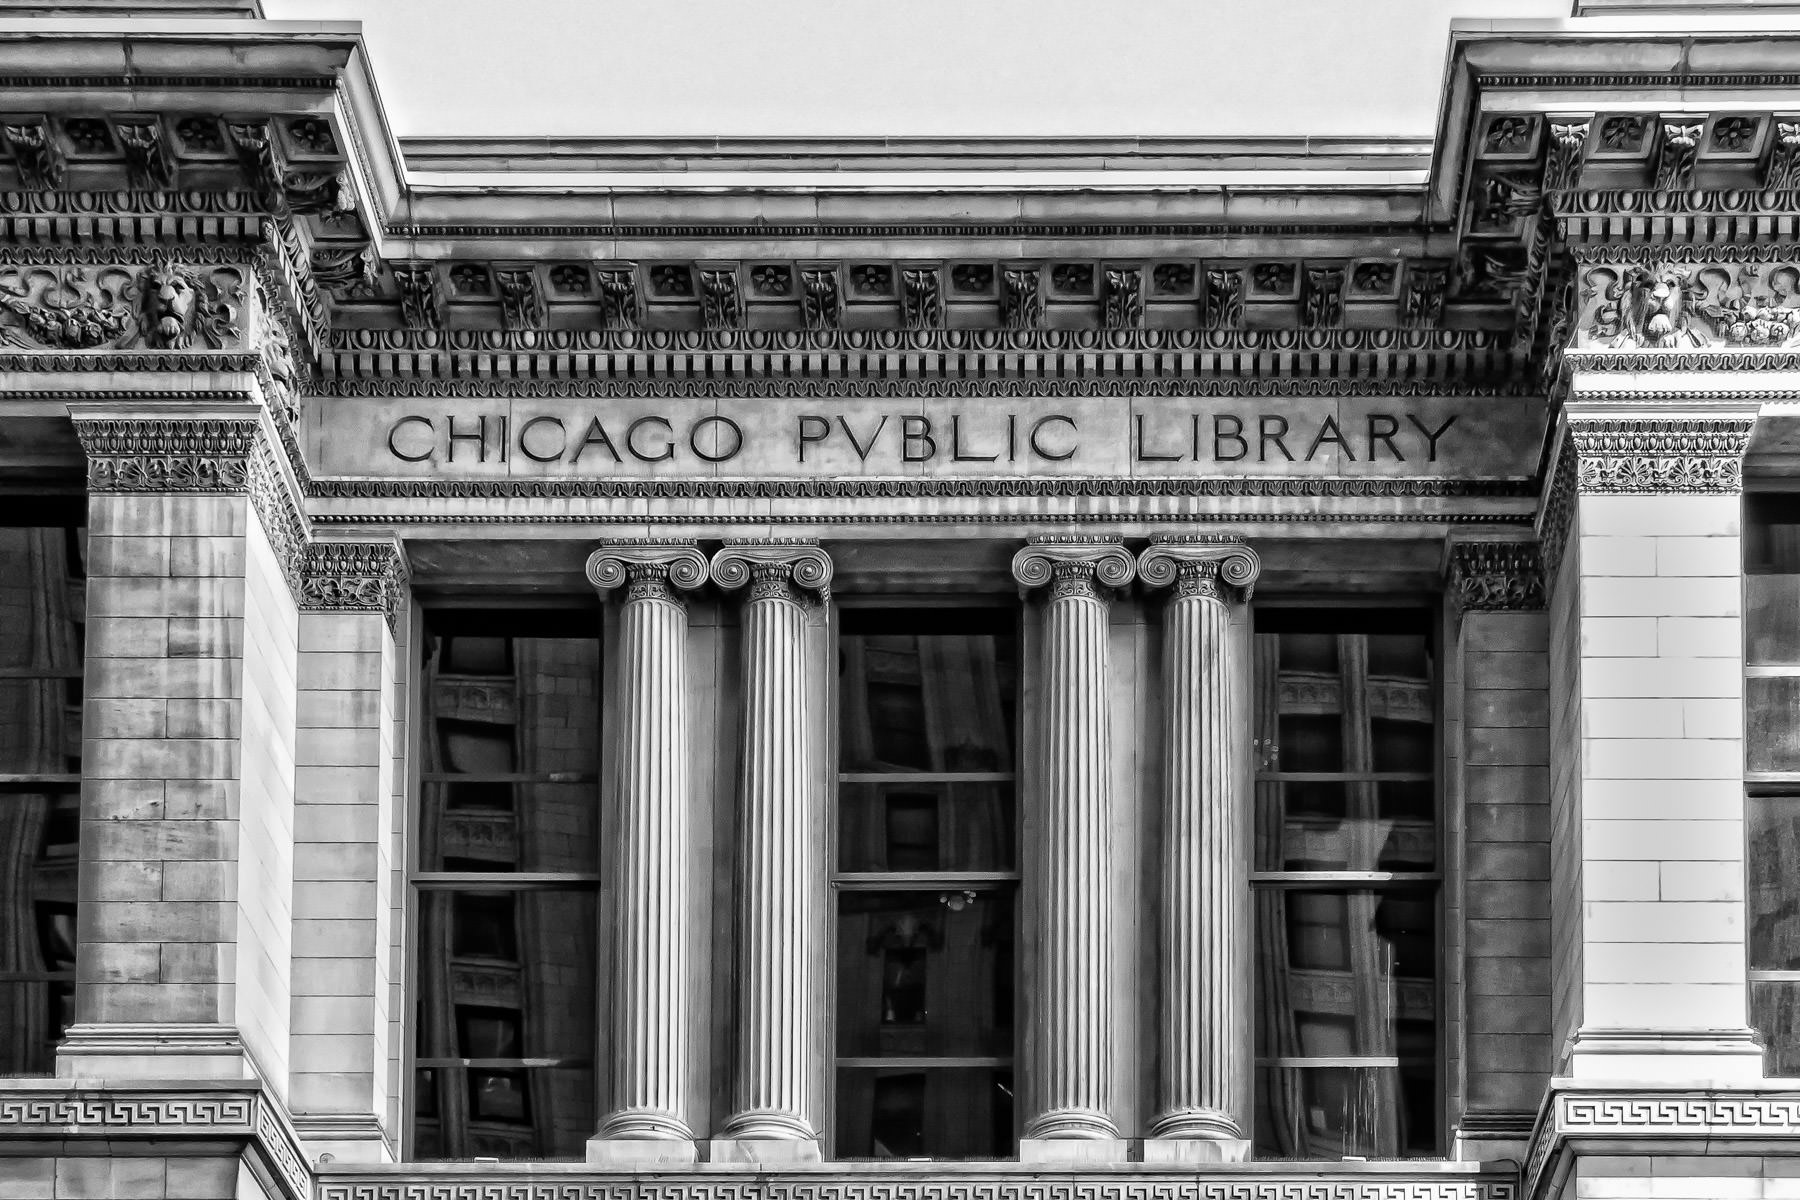 Architectural detail of the Chicago Cultural Center, originally built in 1897 as the city's main public library.